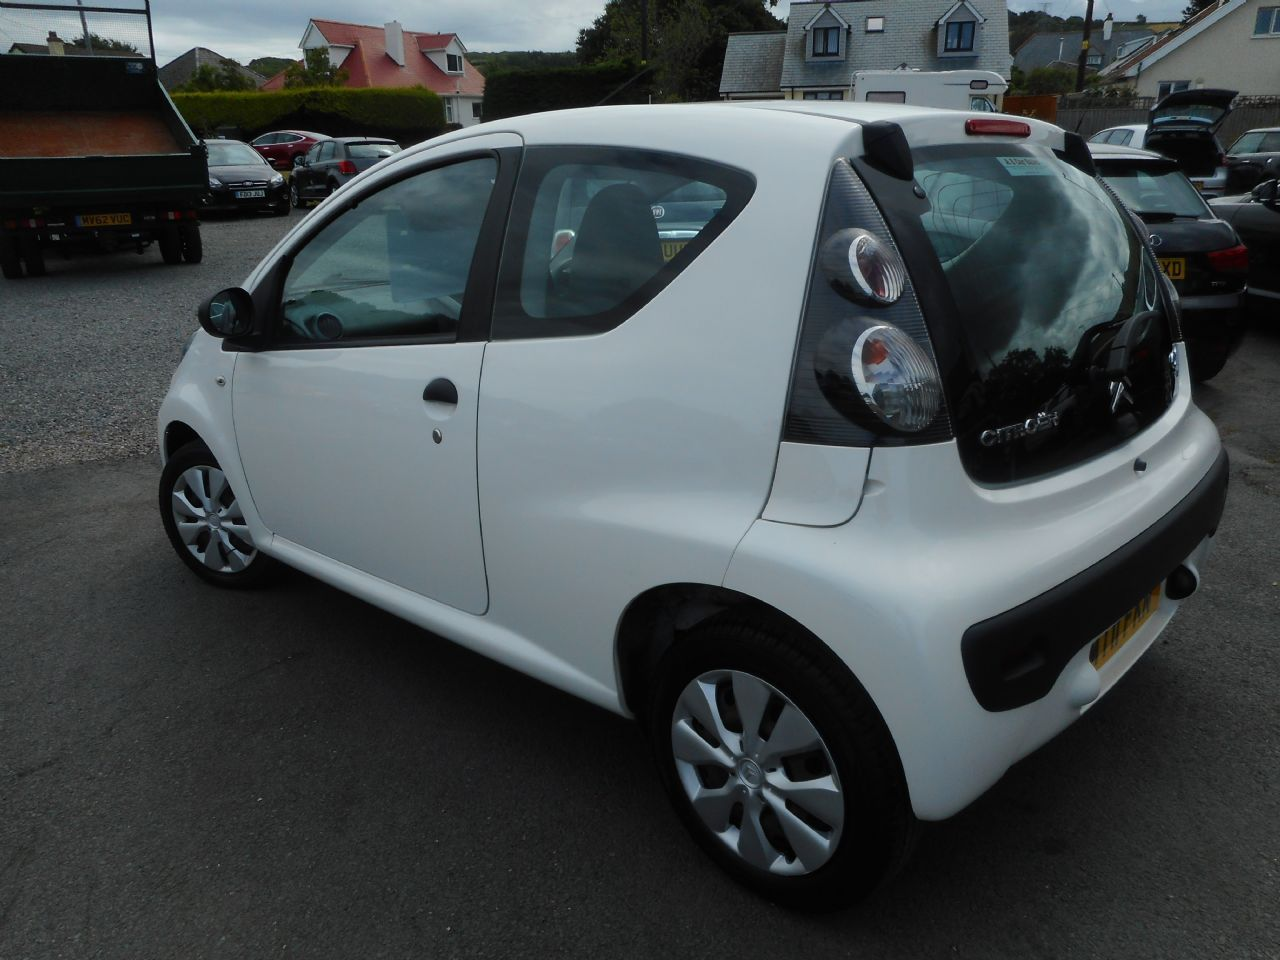 CITROEN C1 1.0i 68hp VTR (2011) - Picture 8